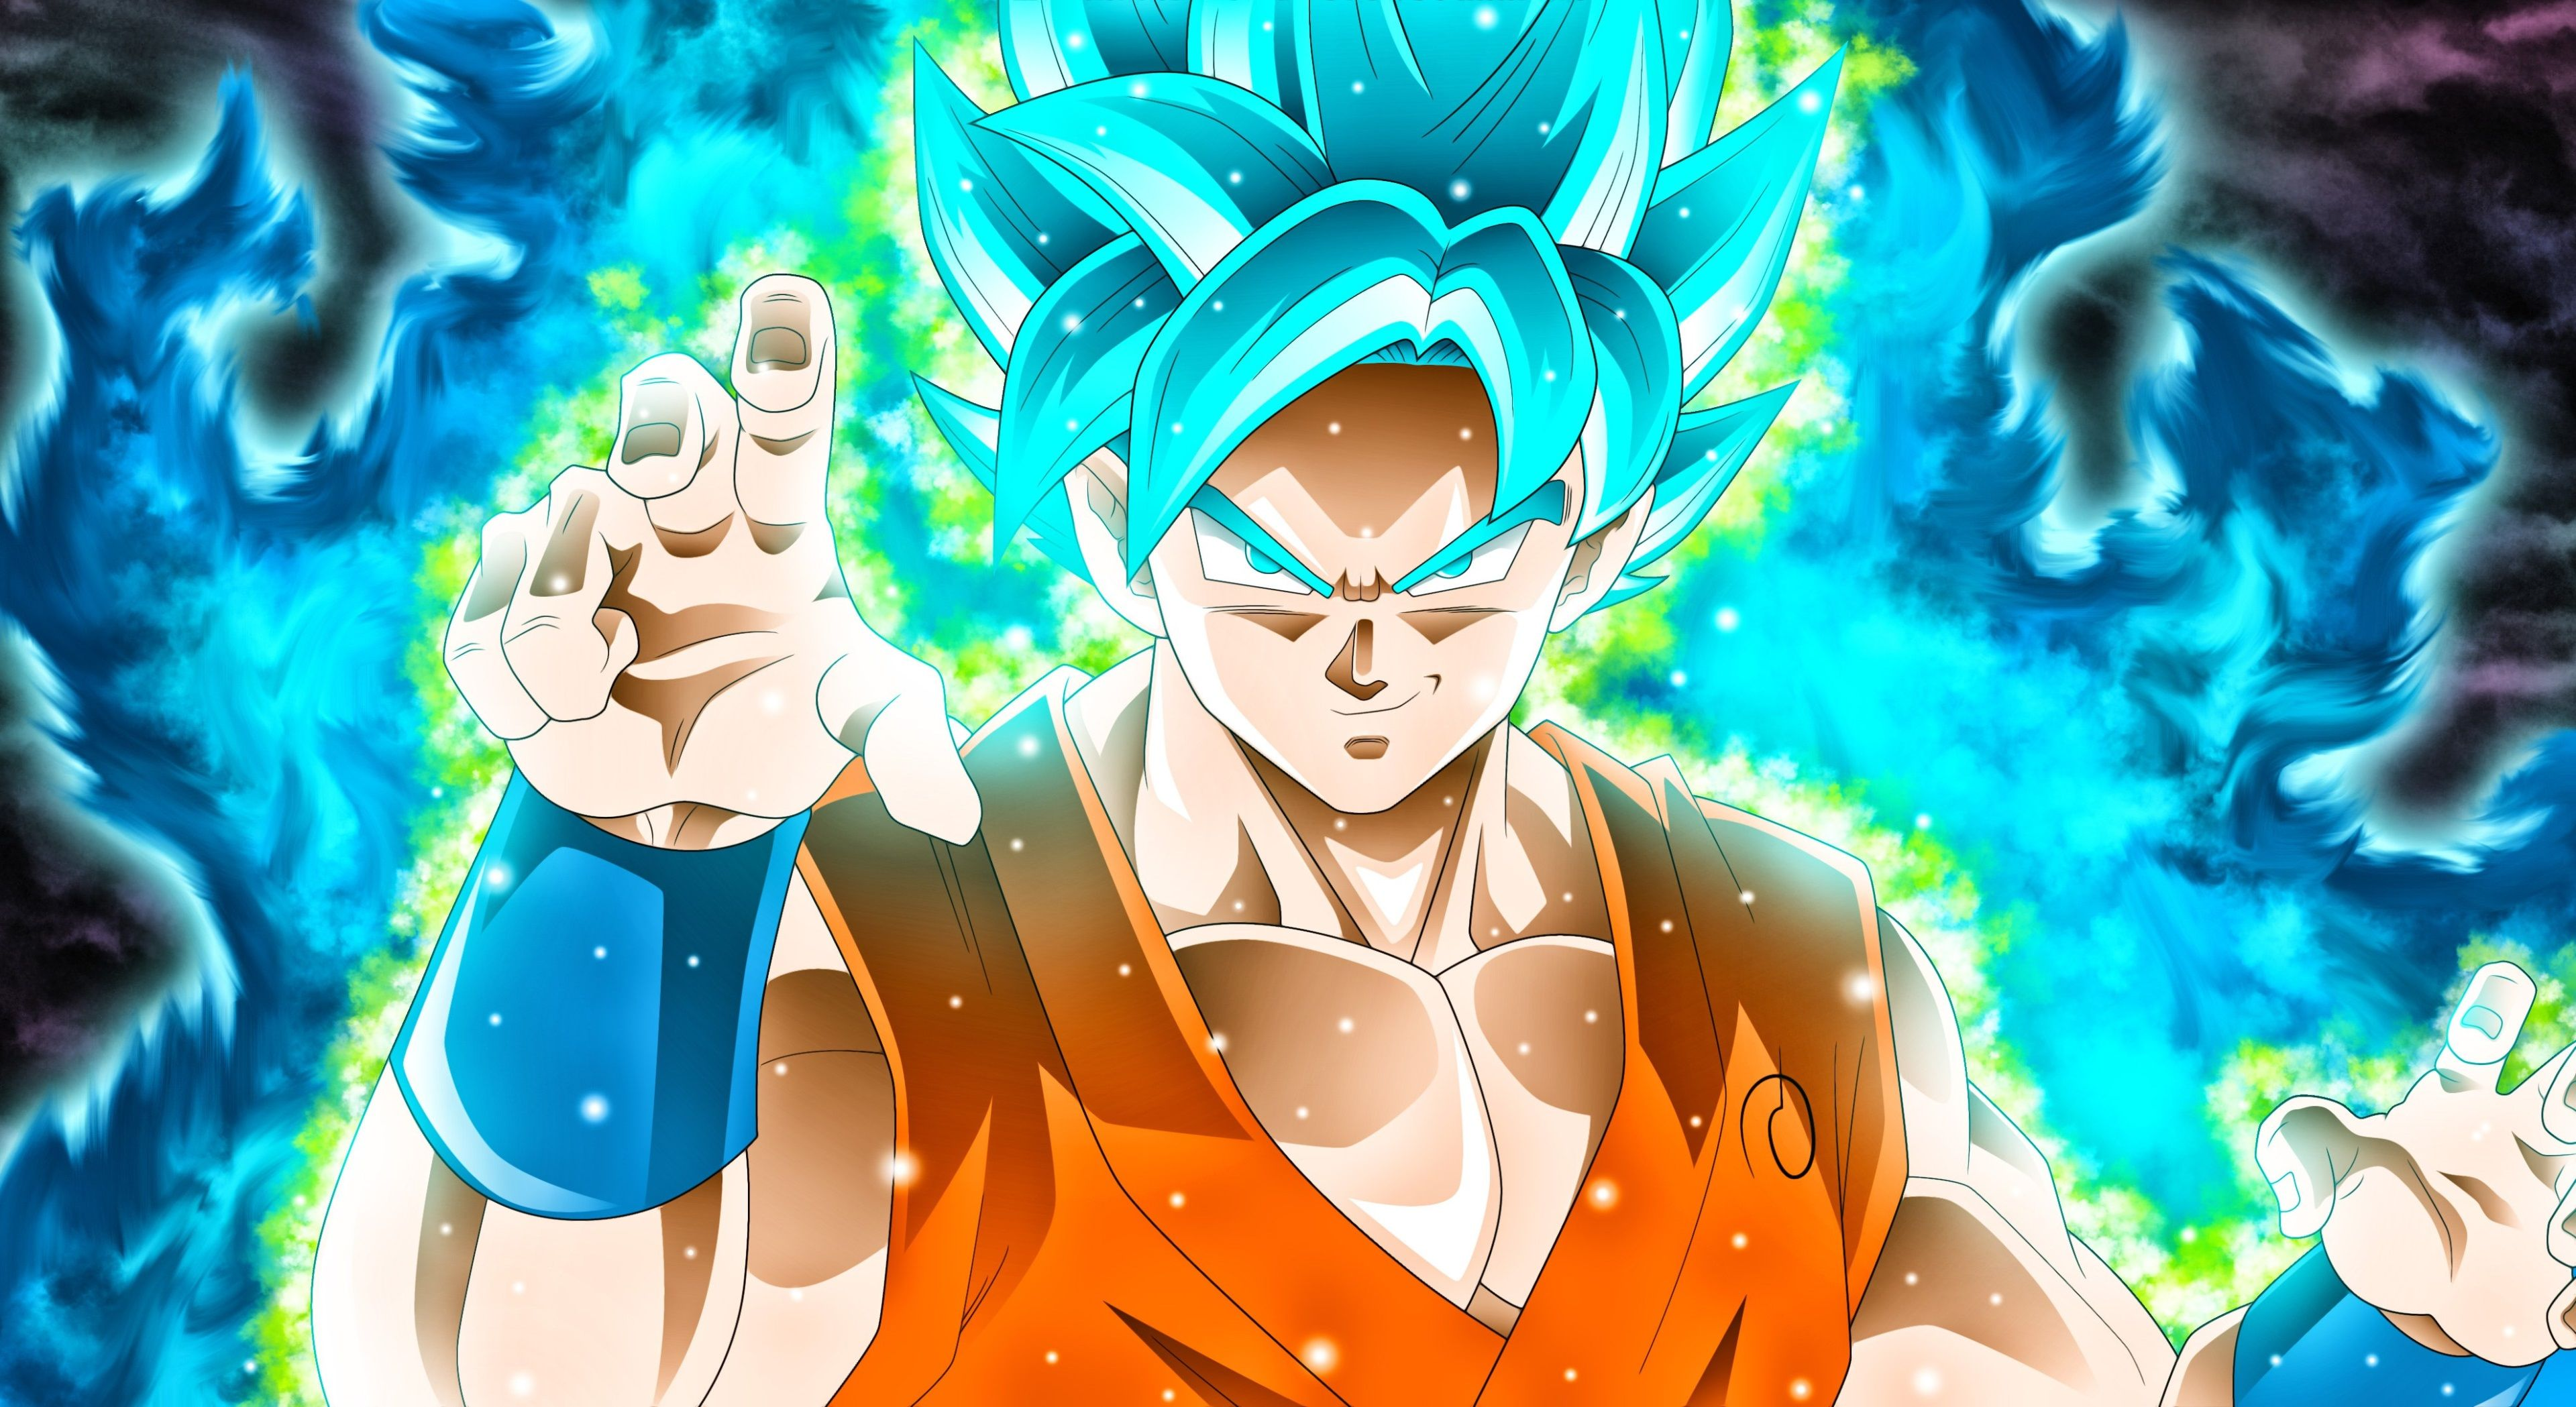 Filename 3840x2098 Dragon Ball Super 4k Wallpapers Free Download Resolution 3840x2098 File Size Goku Super Saiyan Blue Anime Dragon Ball Super Goku Wallpaper